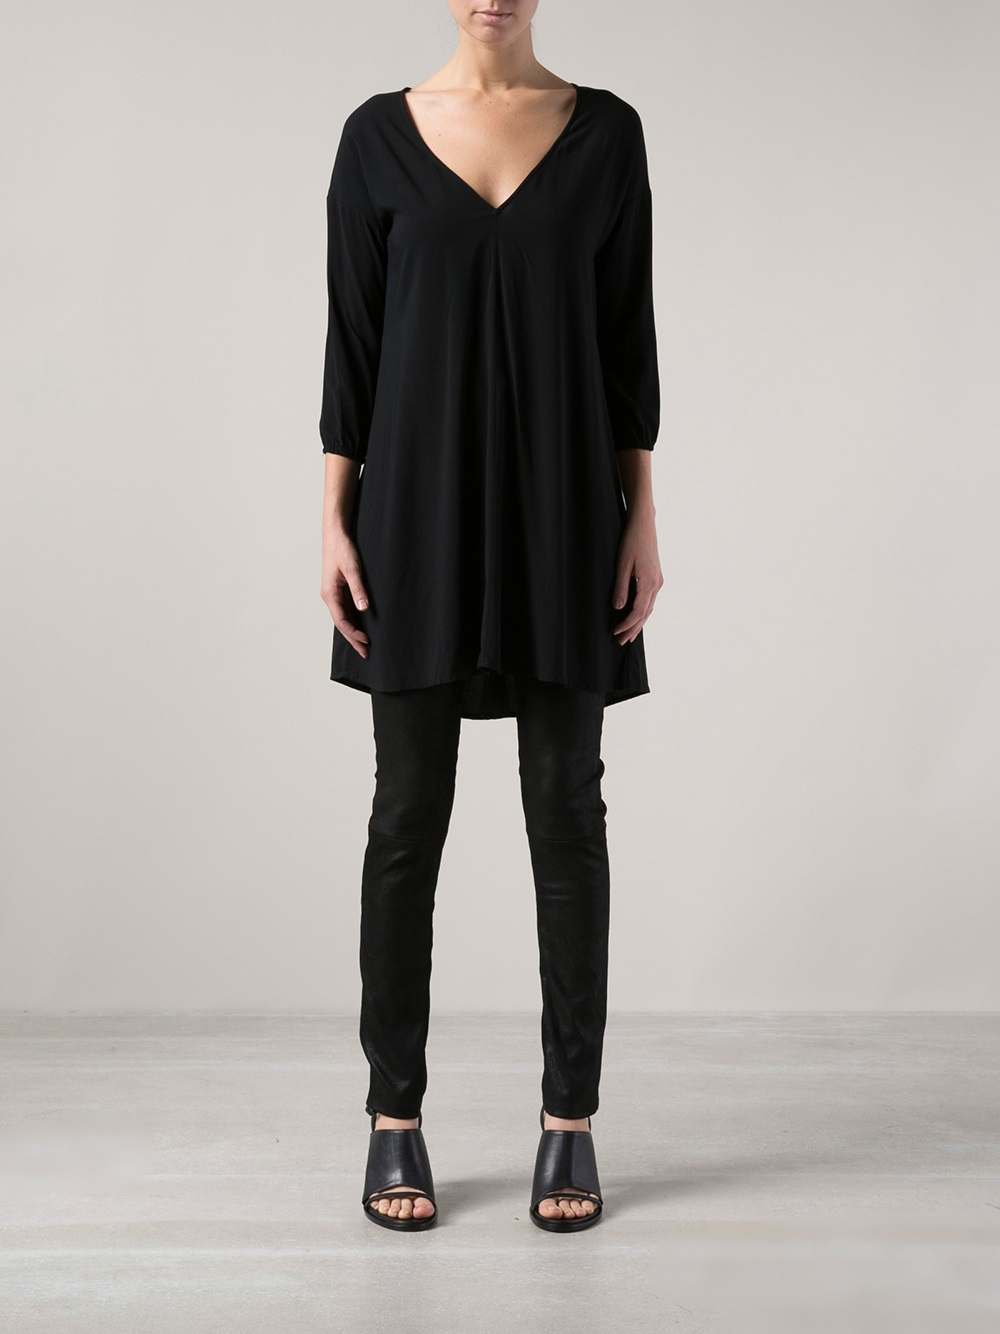 609c0ab8d45 James Perse V Neck Tunic Top in Black - Lyst